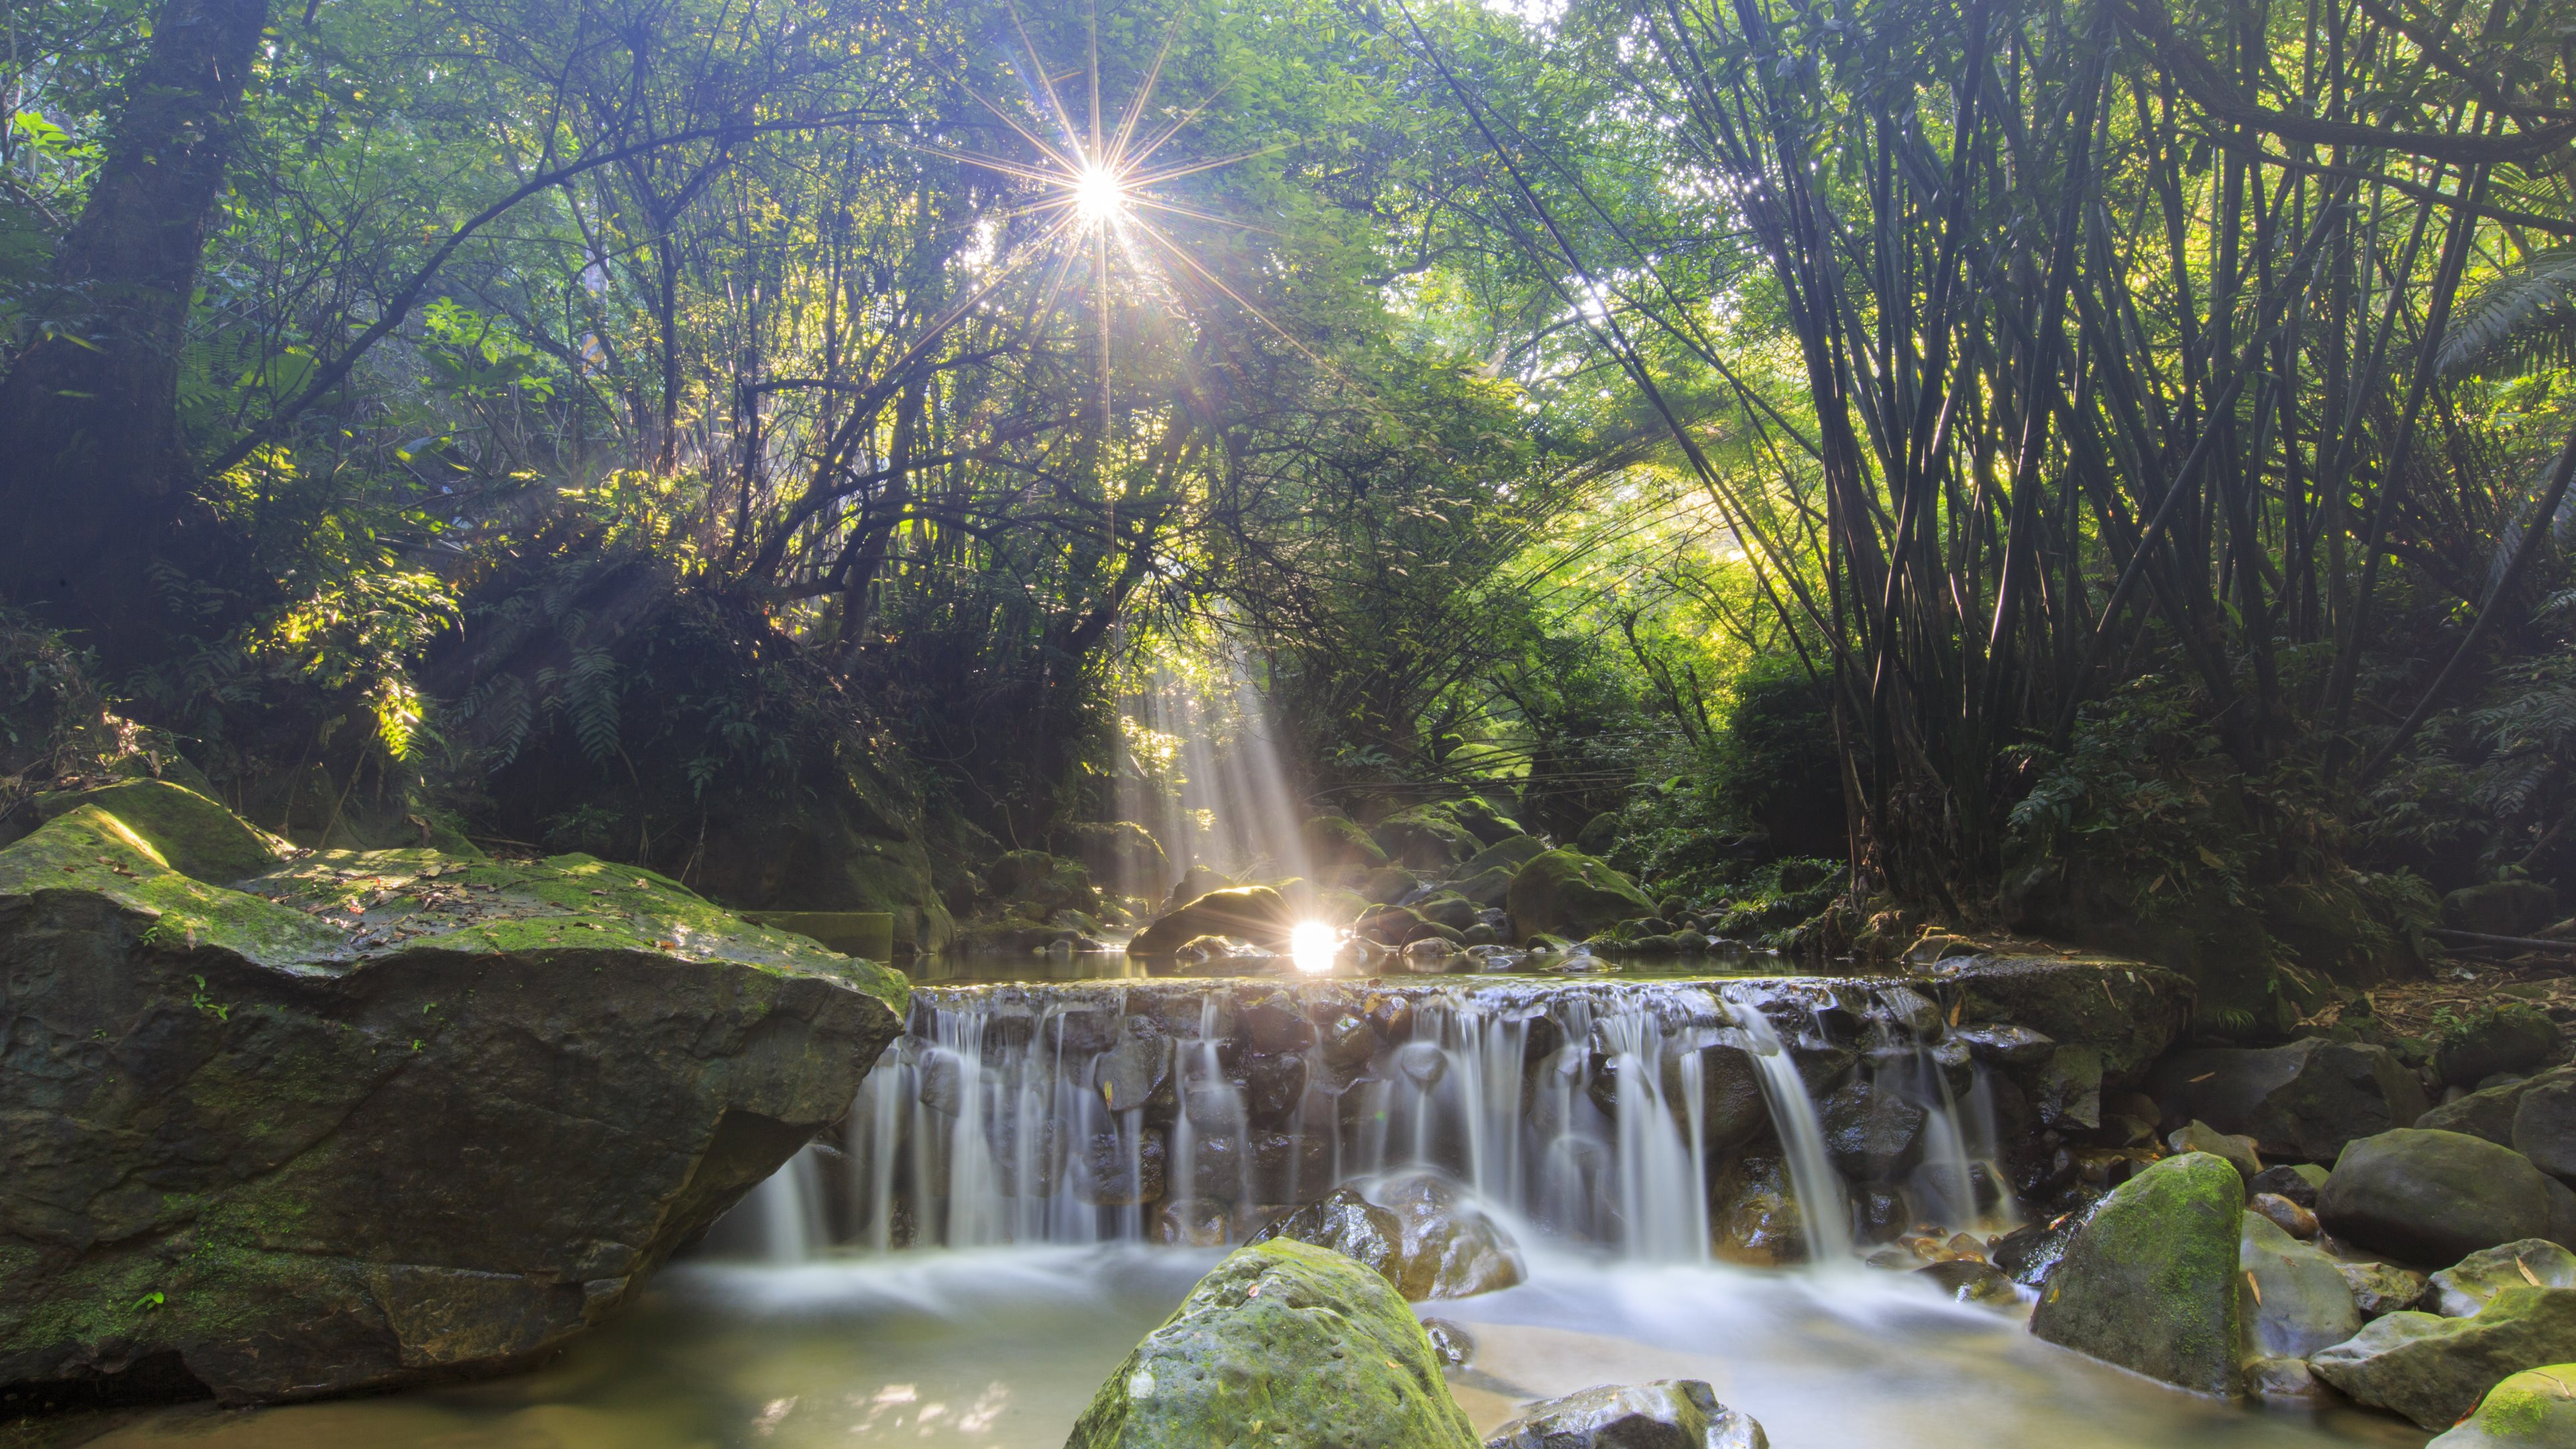 4k waterfalls wallpapers high quality download free for Belle photo hd